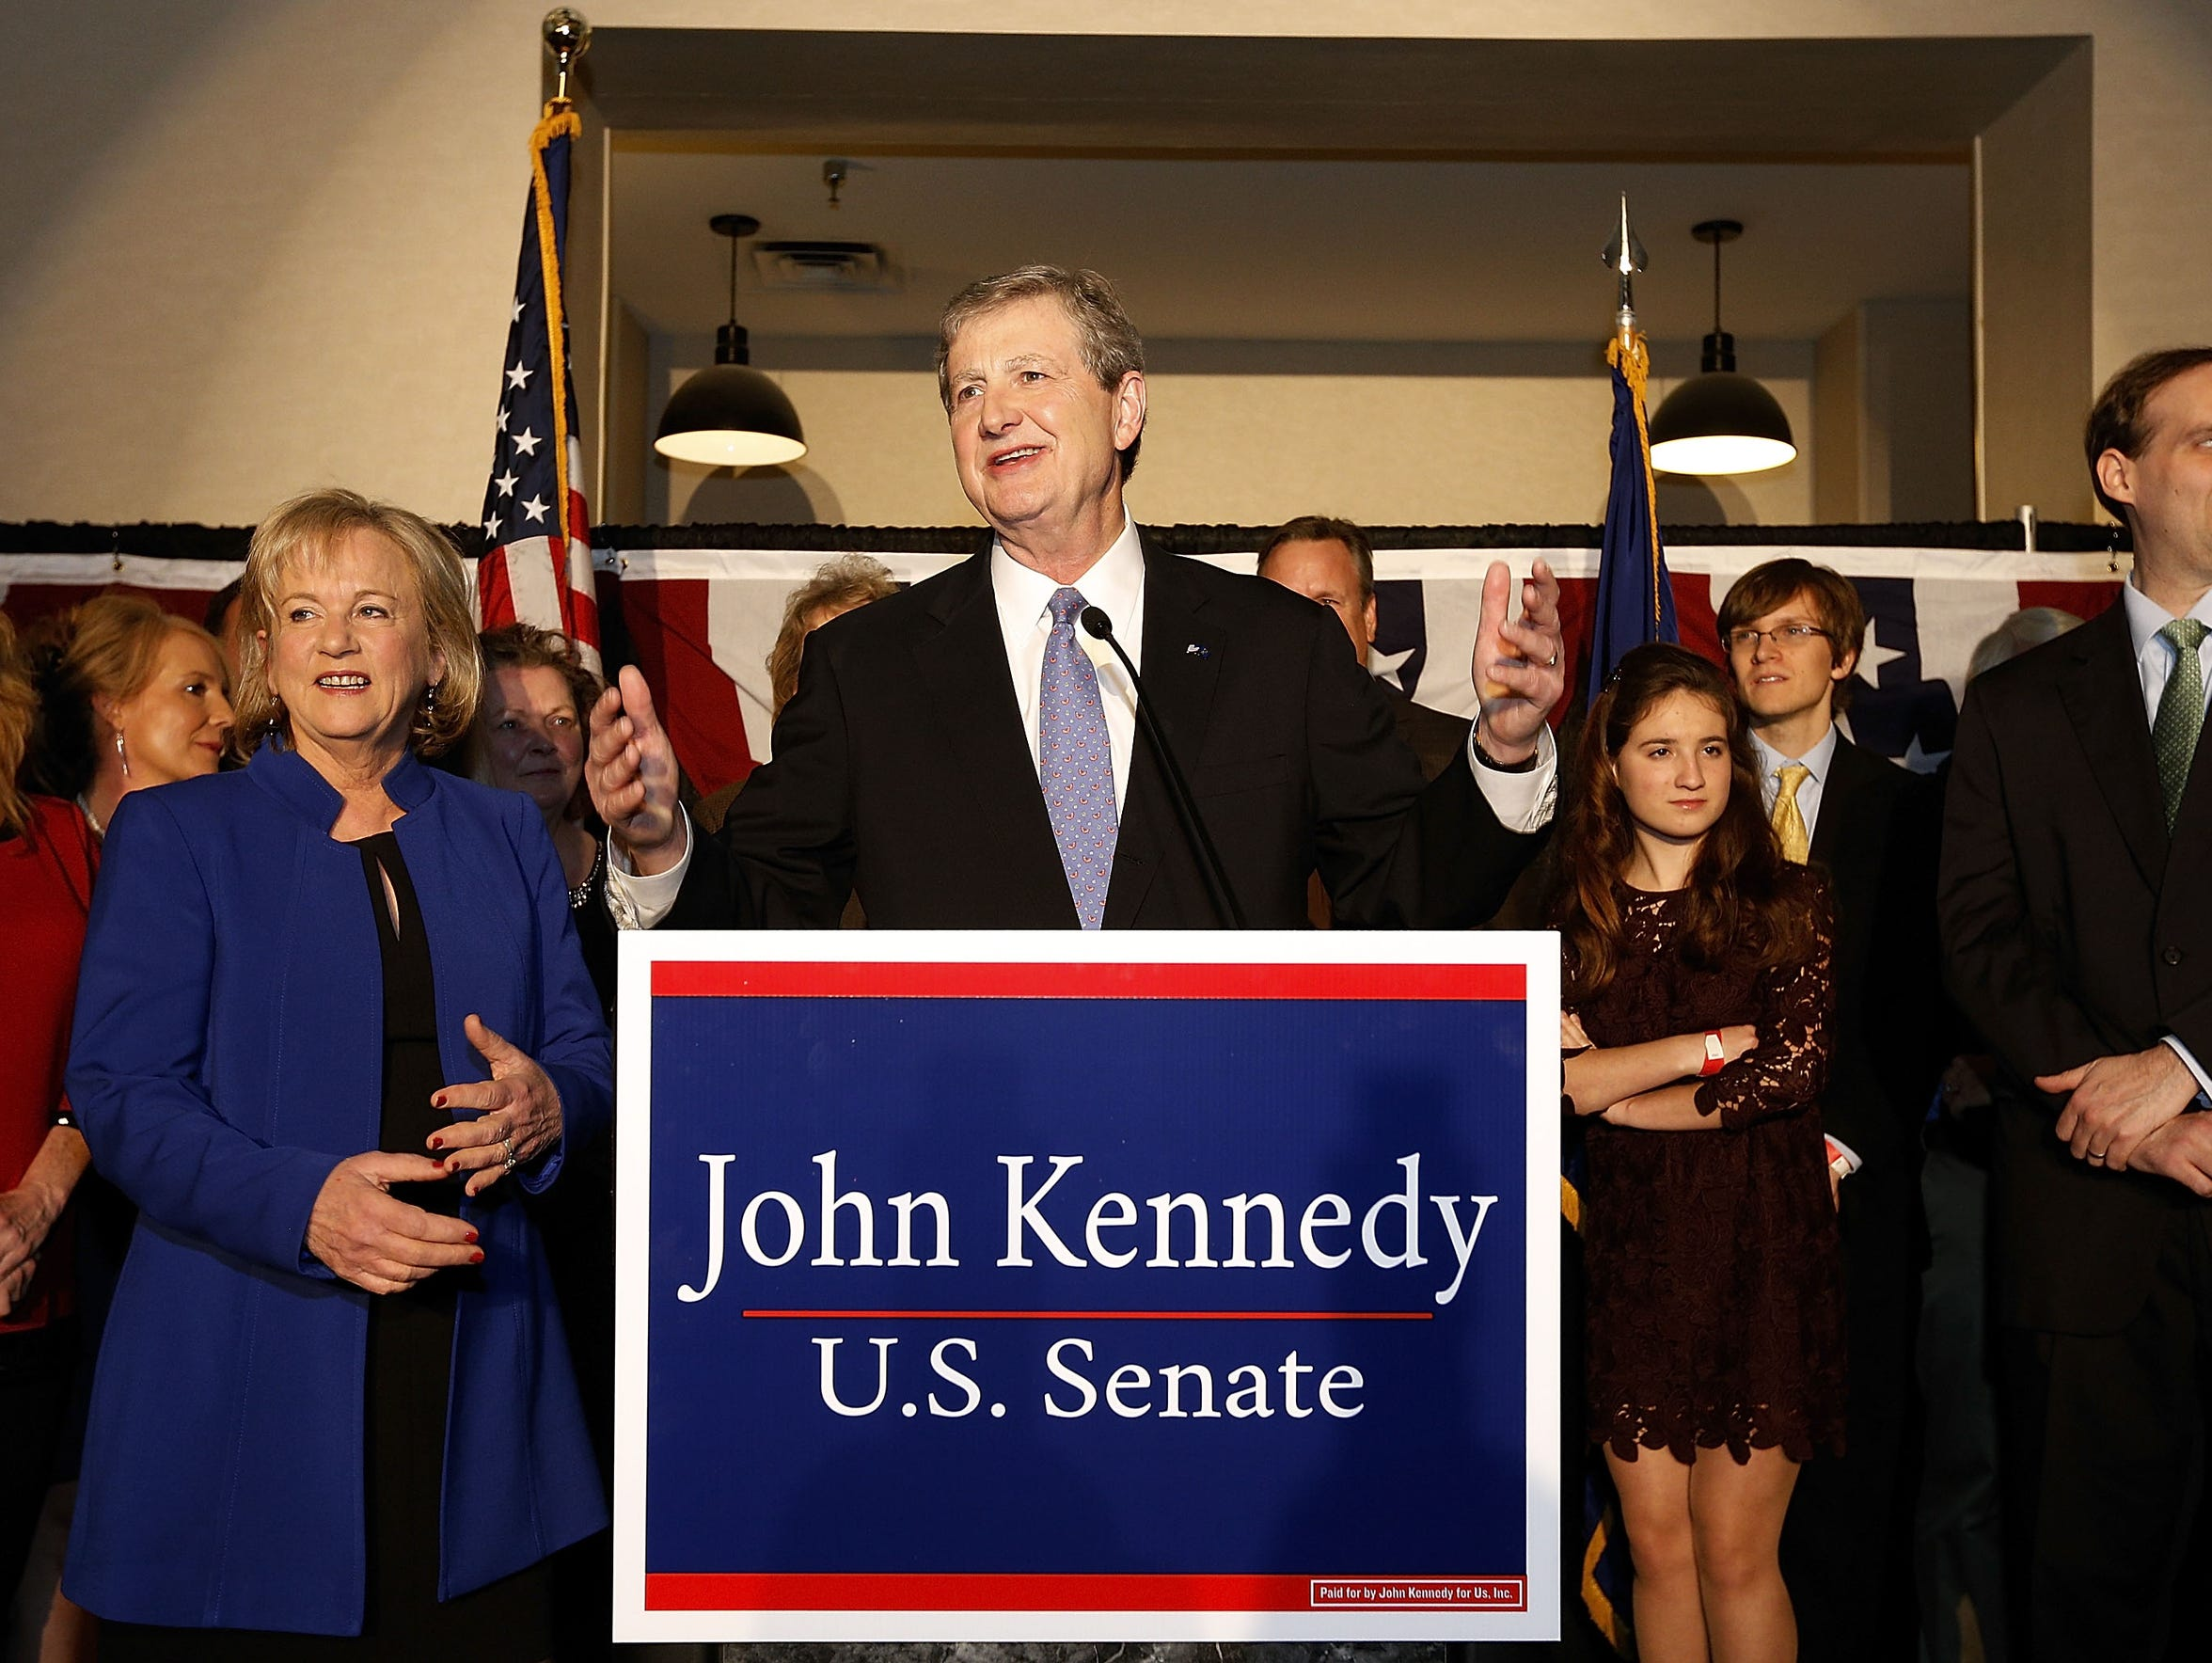 John Kennedy delivers a victory speech during an election